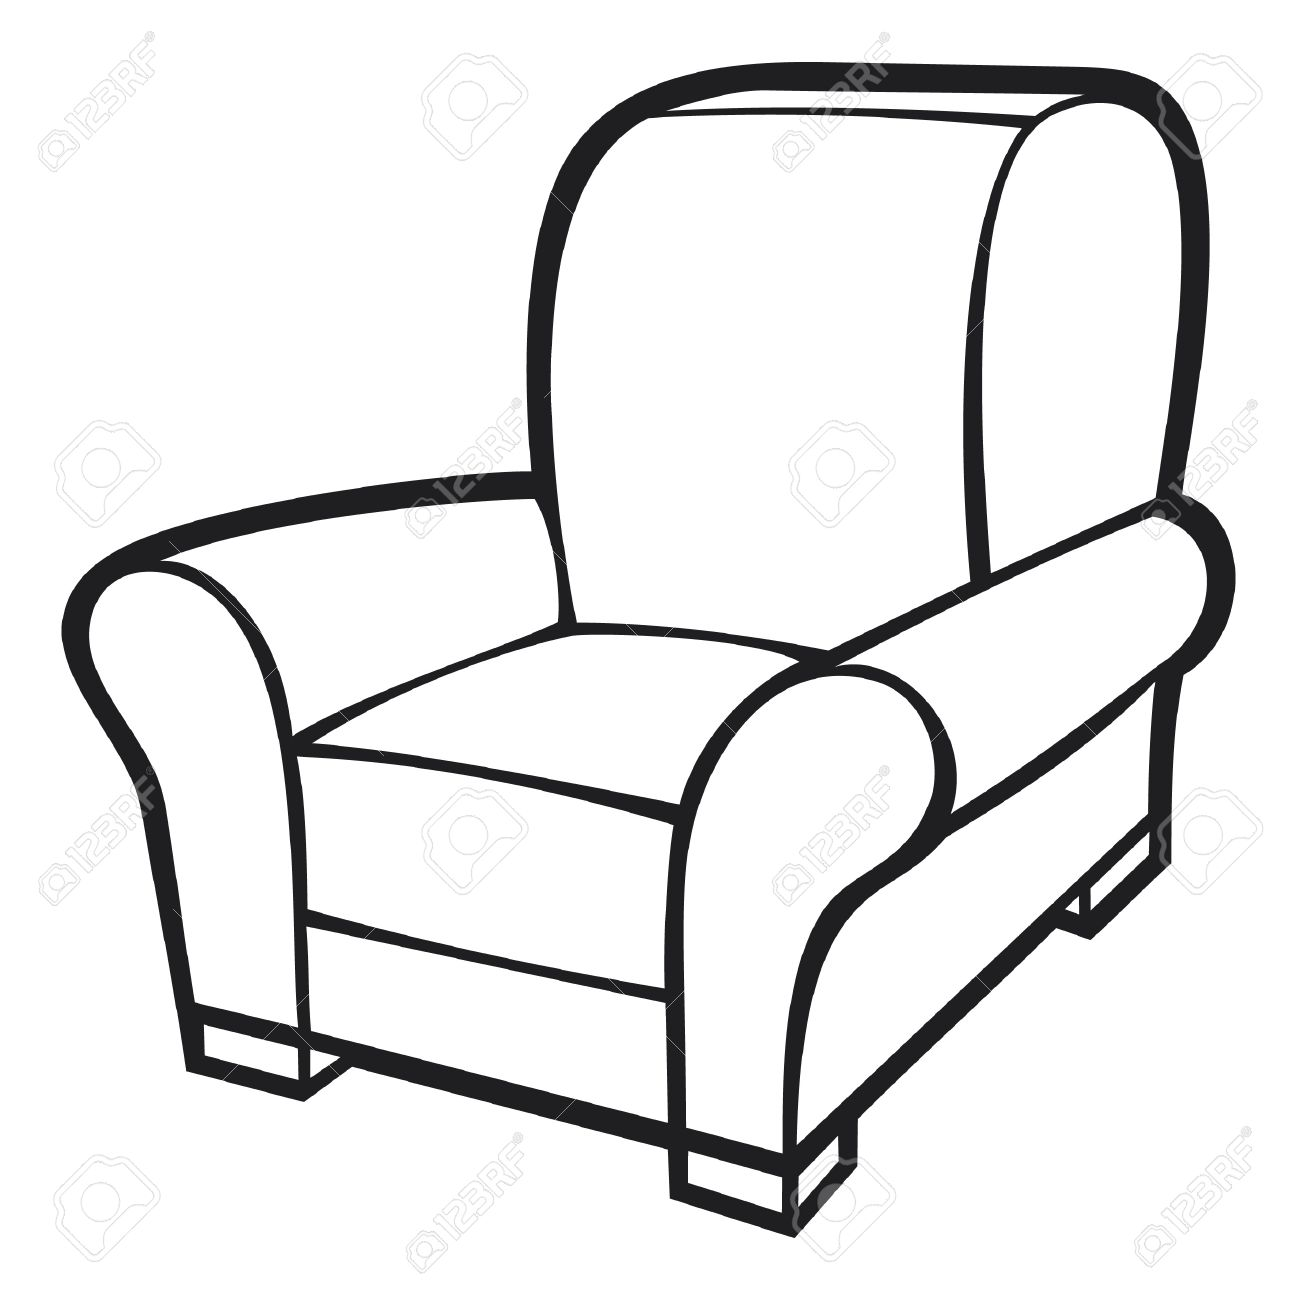 Drawn sofa cartoon Clipart Art Free chair%20clipart Clipart